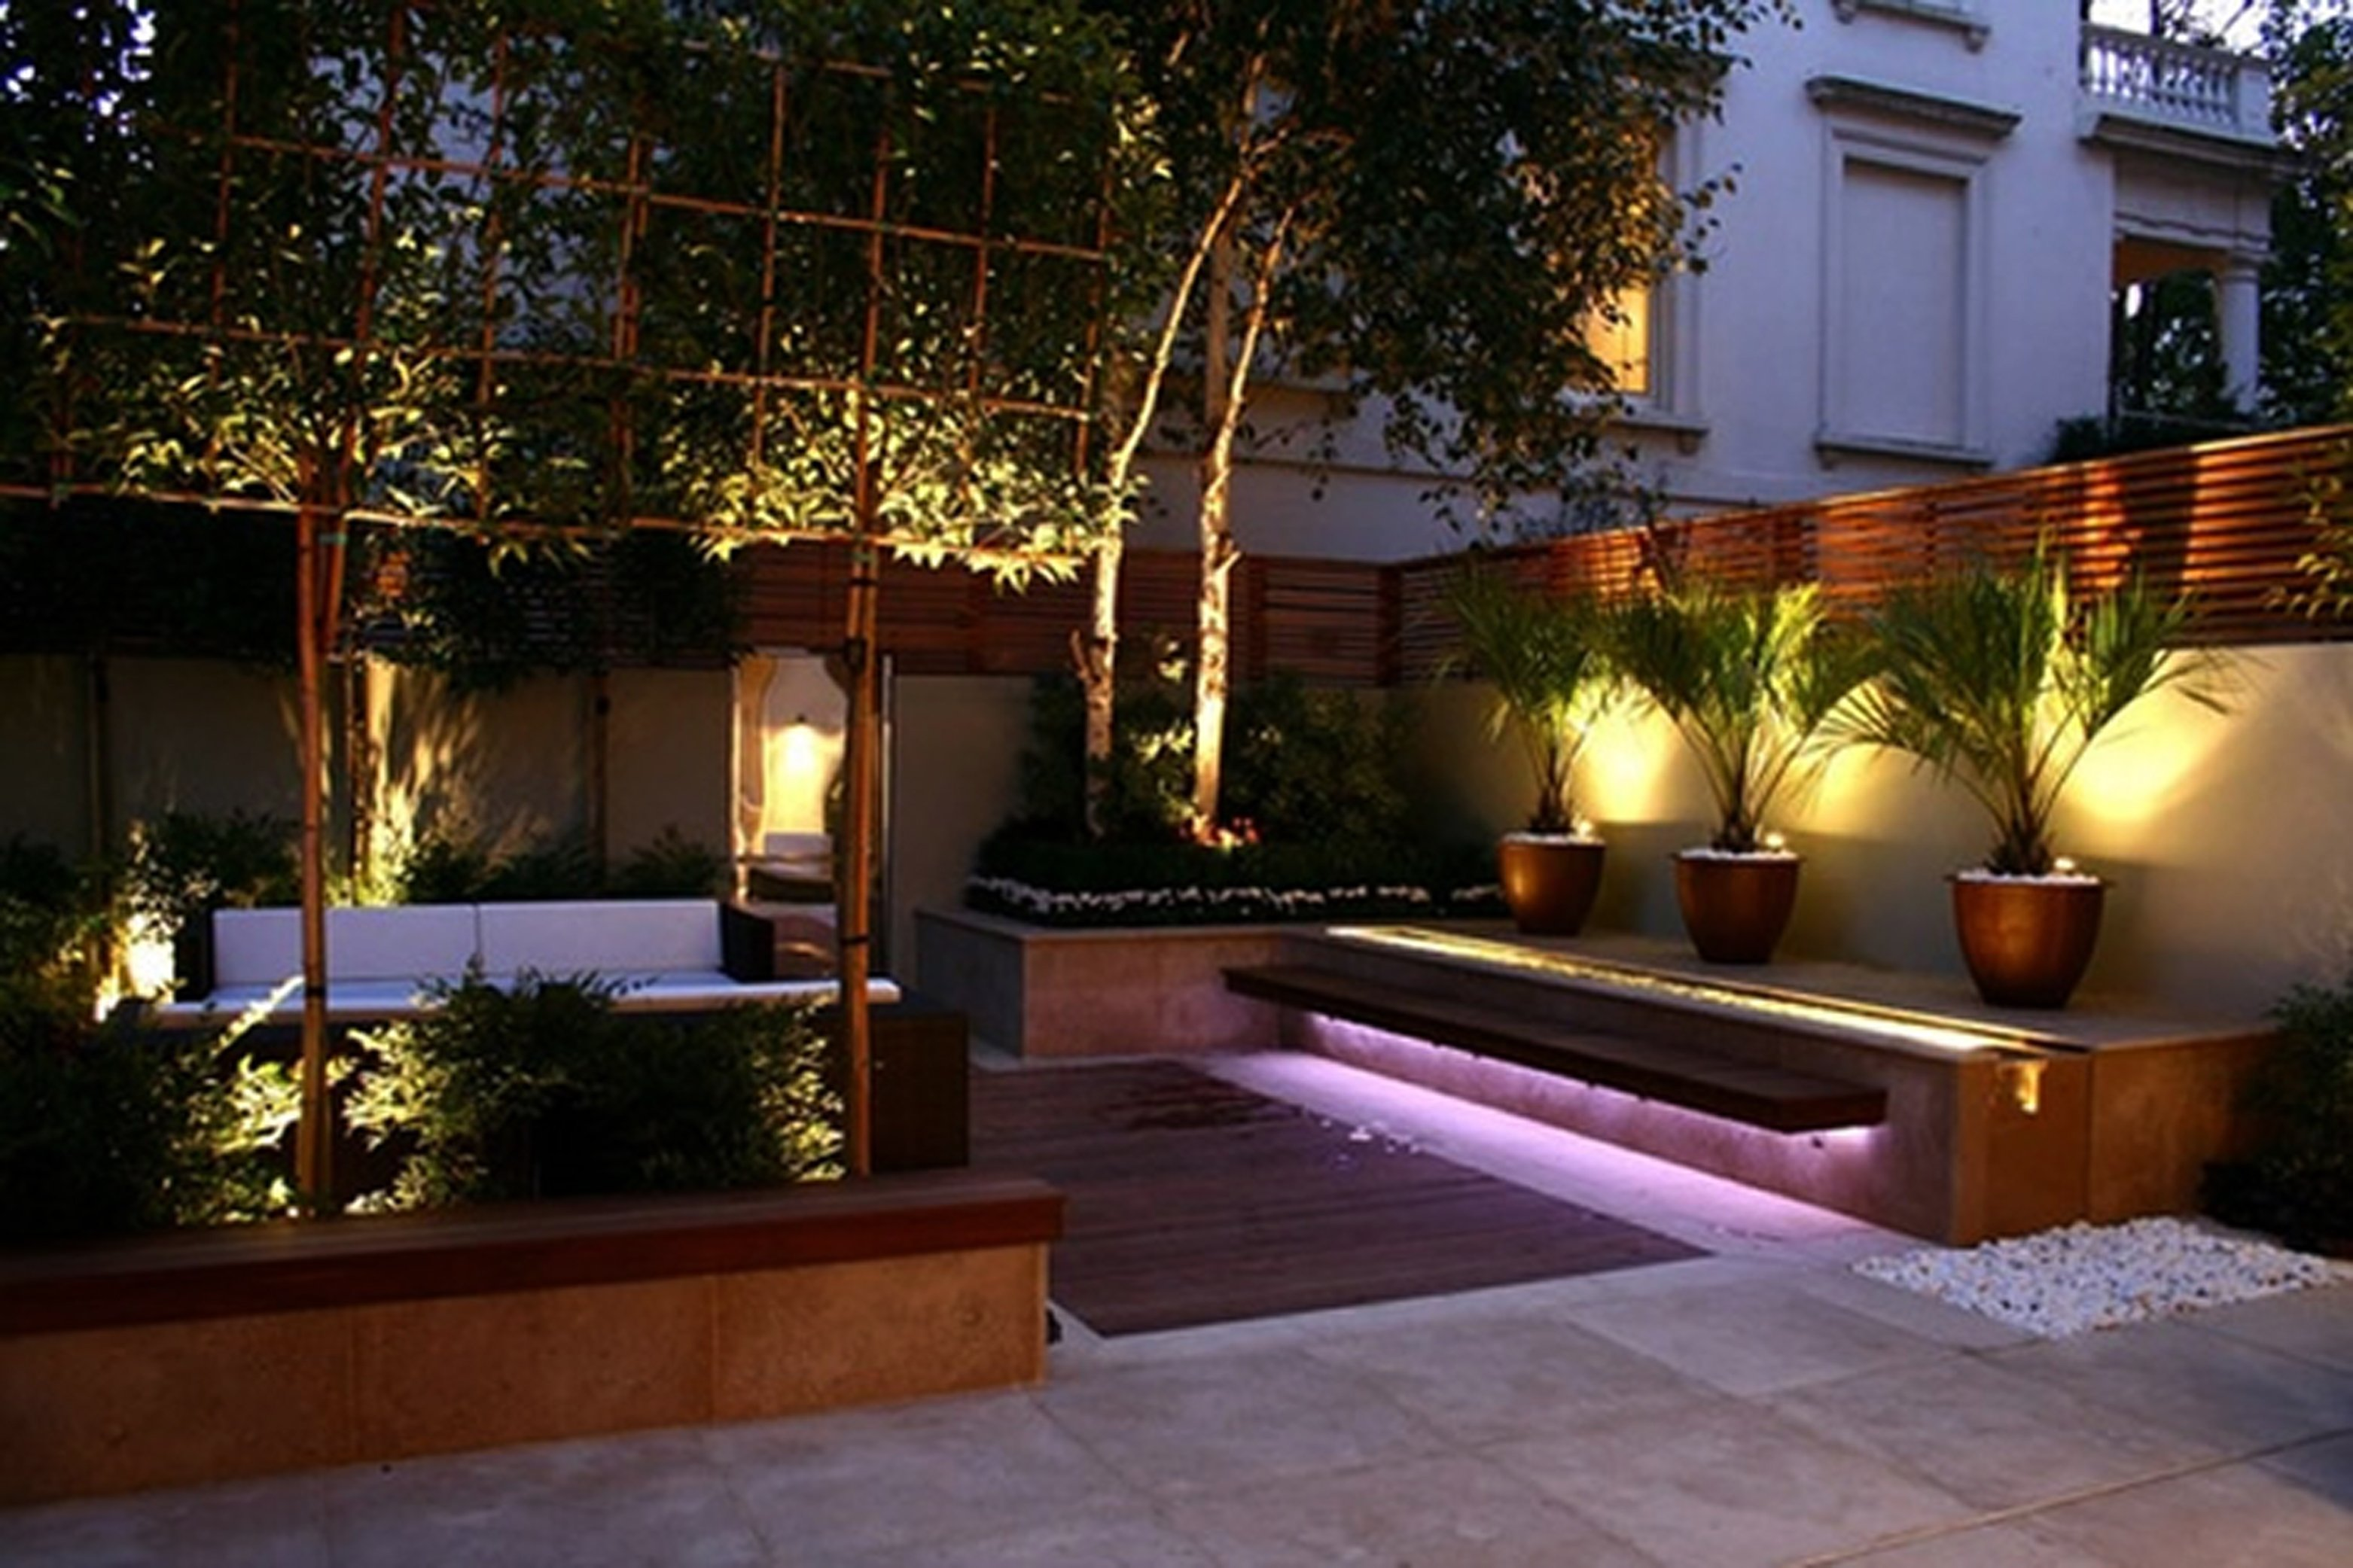 Ideas para decorar exteriores en primavera for Ideas para decorar una terraza exterior